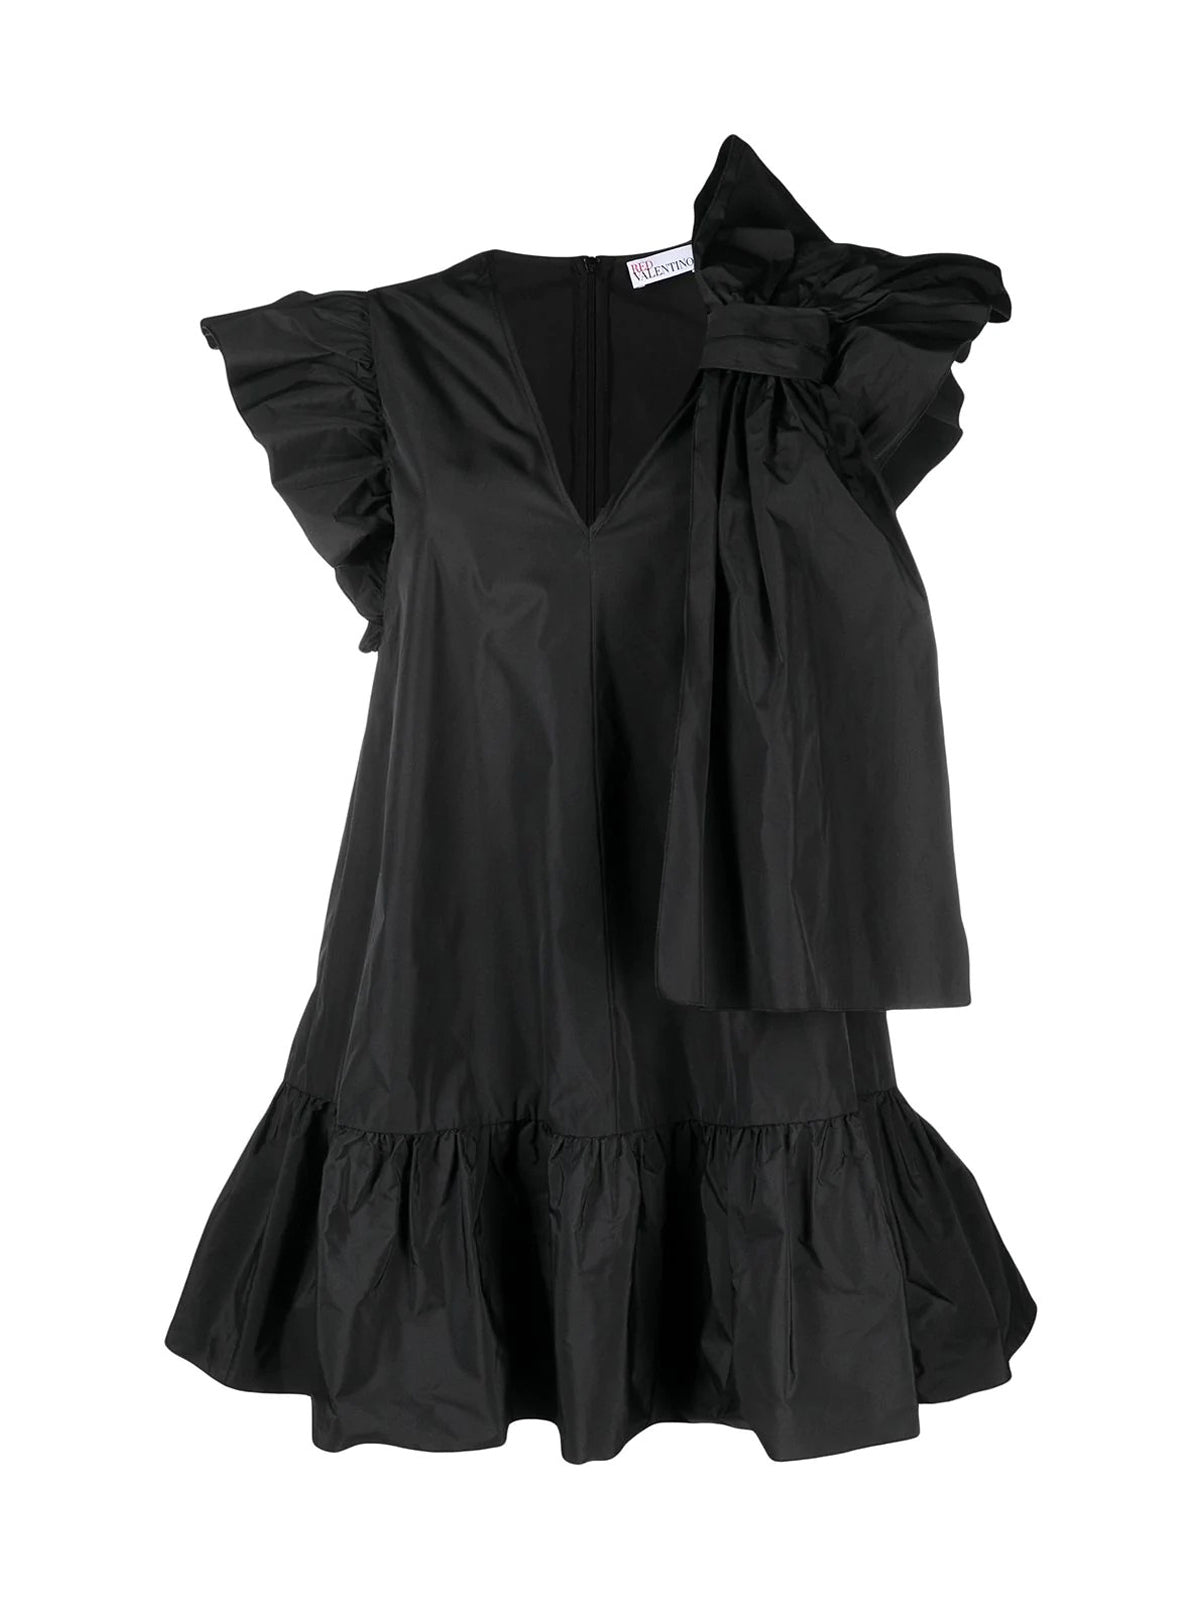 bow and ruffle-detail dress